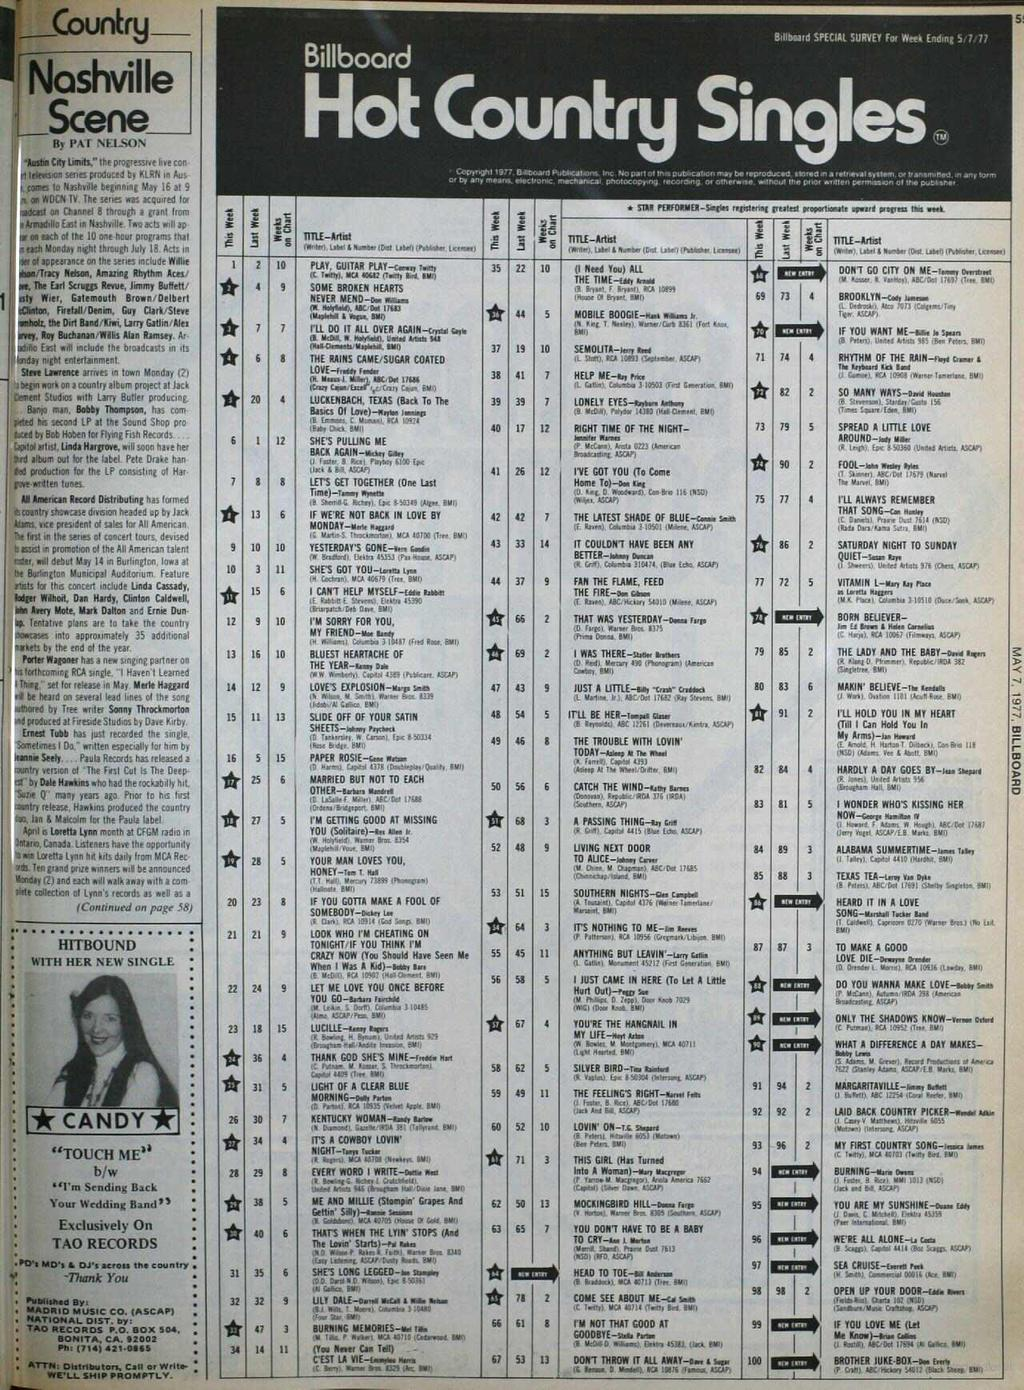 Country r Nashville Scene Itv l'at NELSON Billboard ( Hot Billboard SPECIAL SURVEY For Week Ending 5. t.